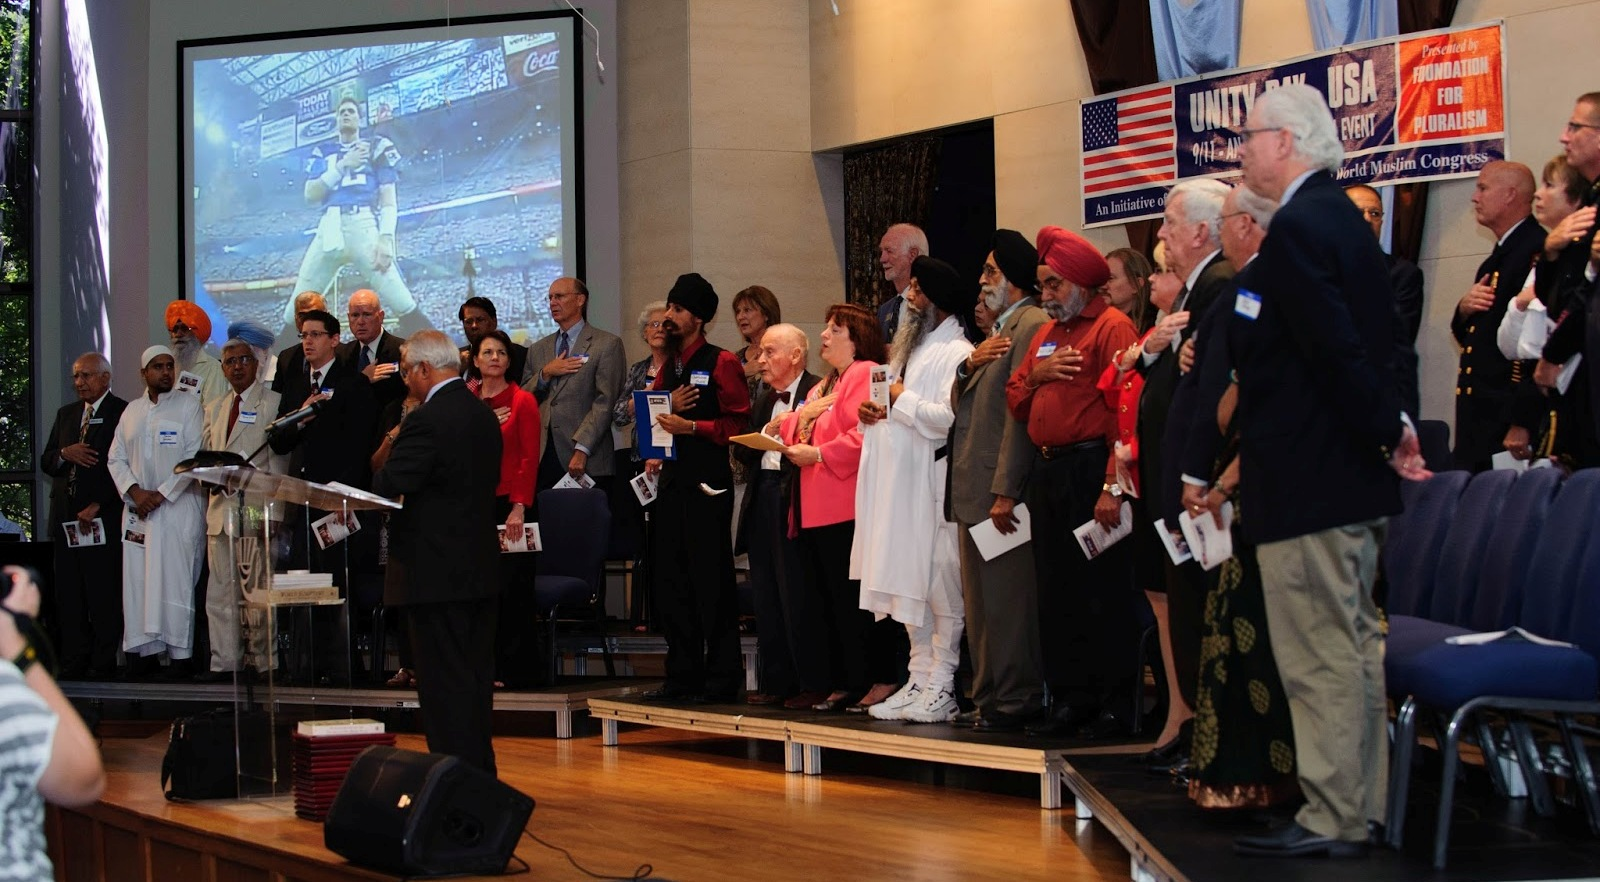 2013-09-26-NationalAnthem_UnitydayUSA.jpg